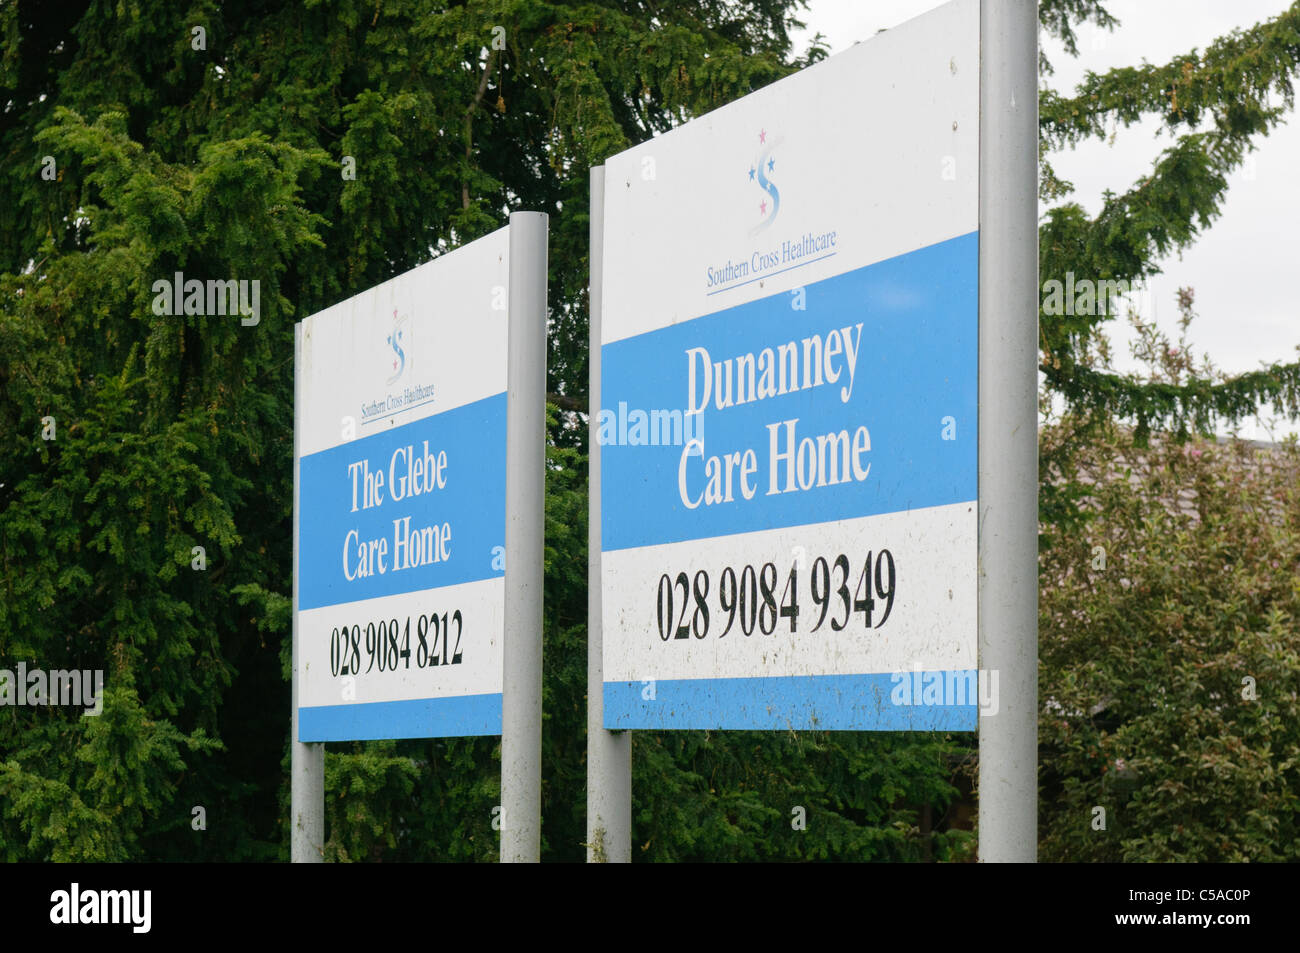 Southern Cross Healthcare announces it is to cease trading - Stock Image